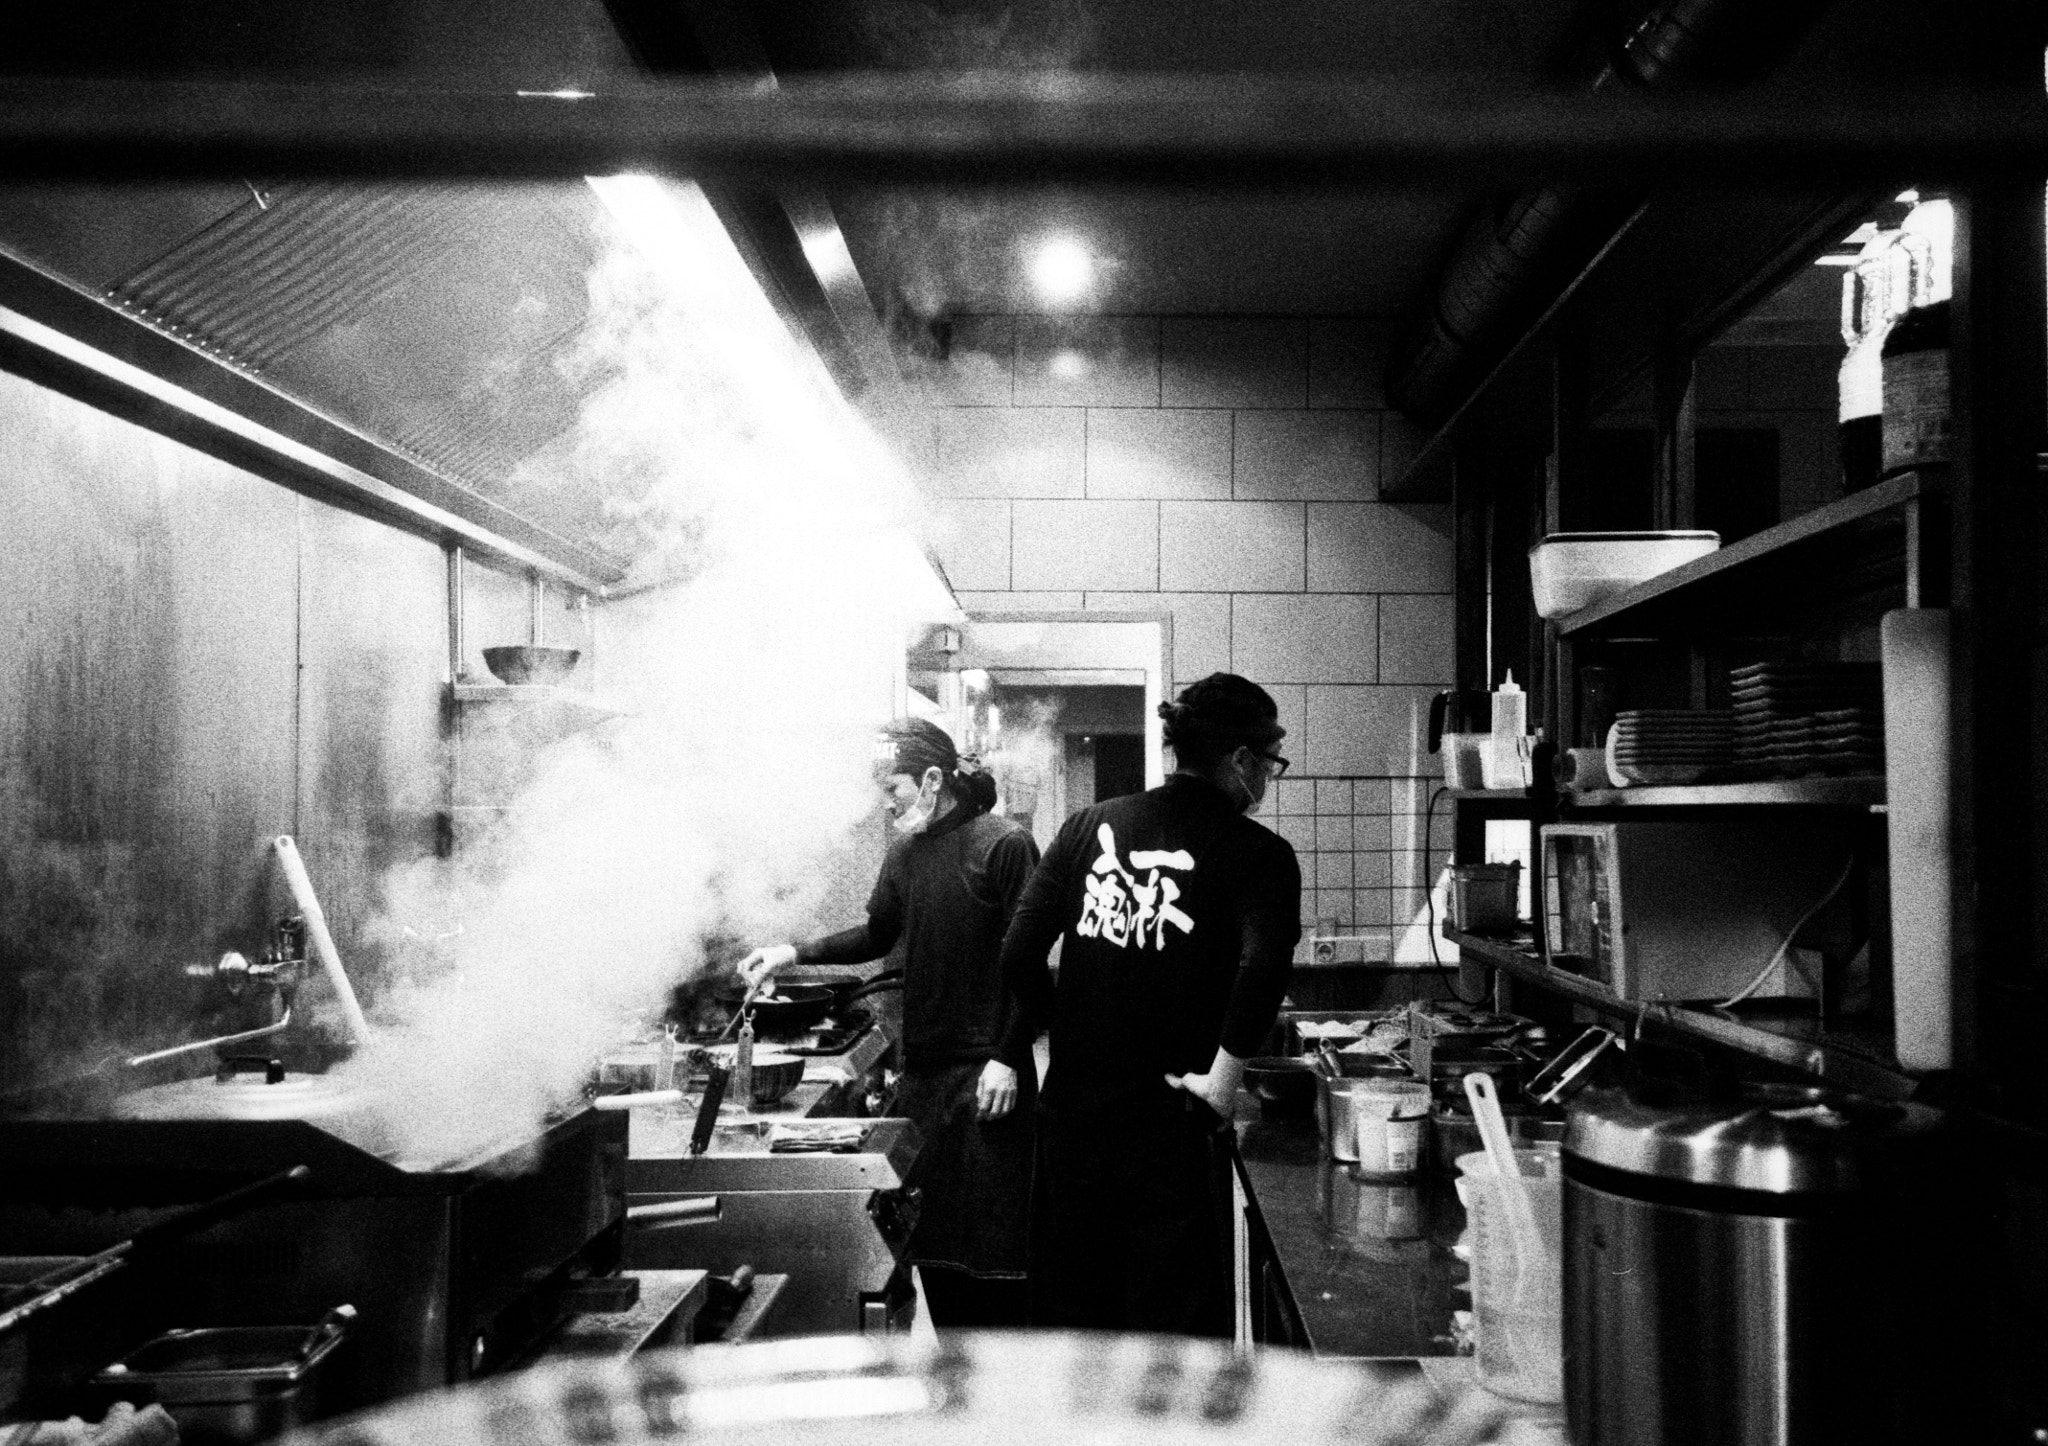 Photograph Smoking Kitchen by Andrew Christanto on 500px